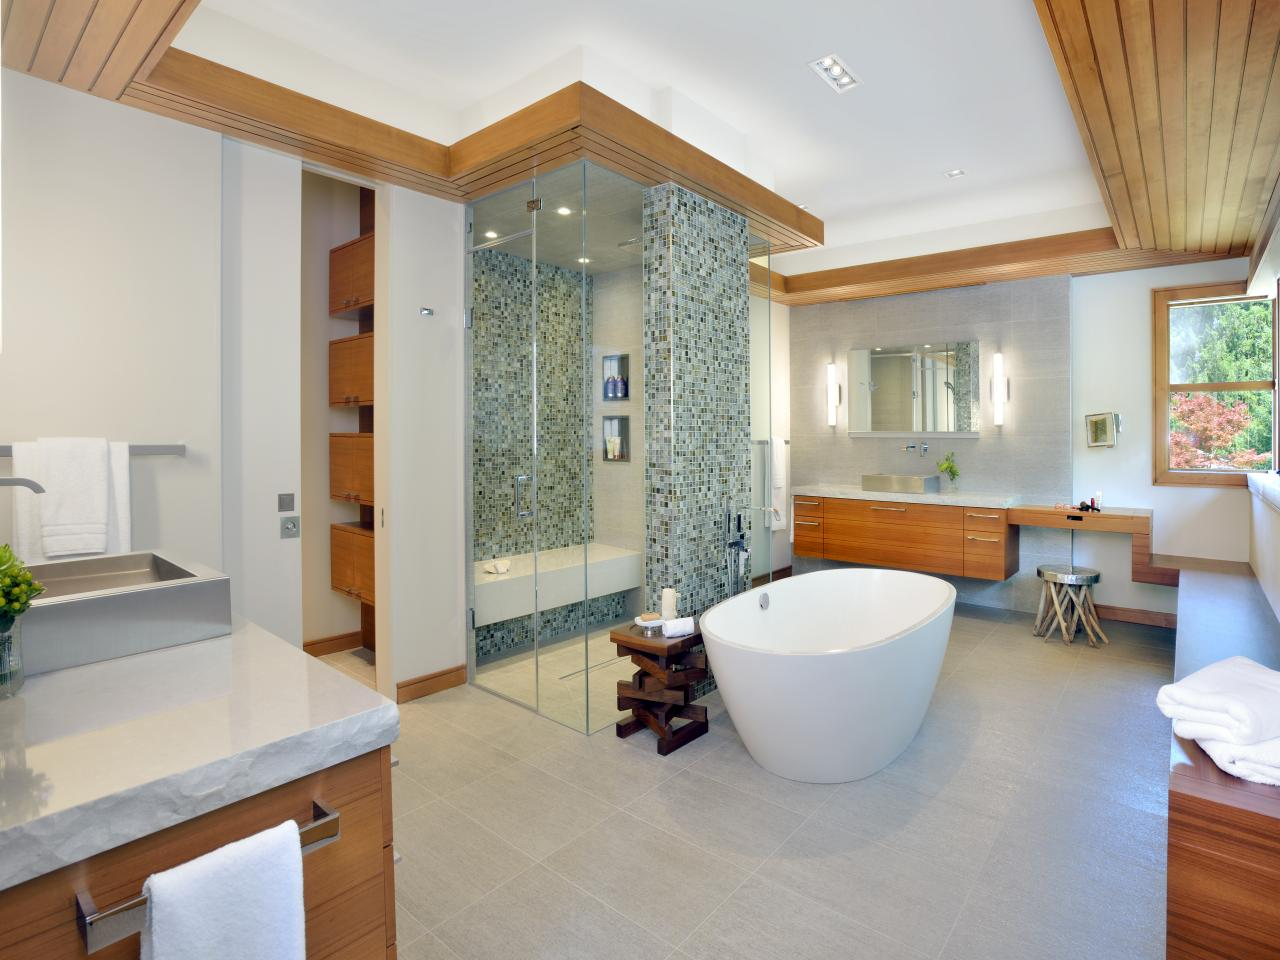 2015 nkba people 39 s pick best bathroom bathroom ideas designs hgtv - Best bathrooms designs ...